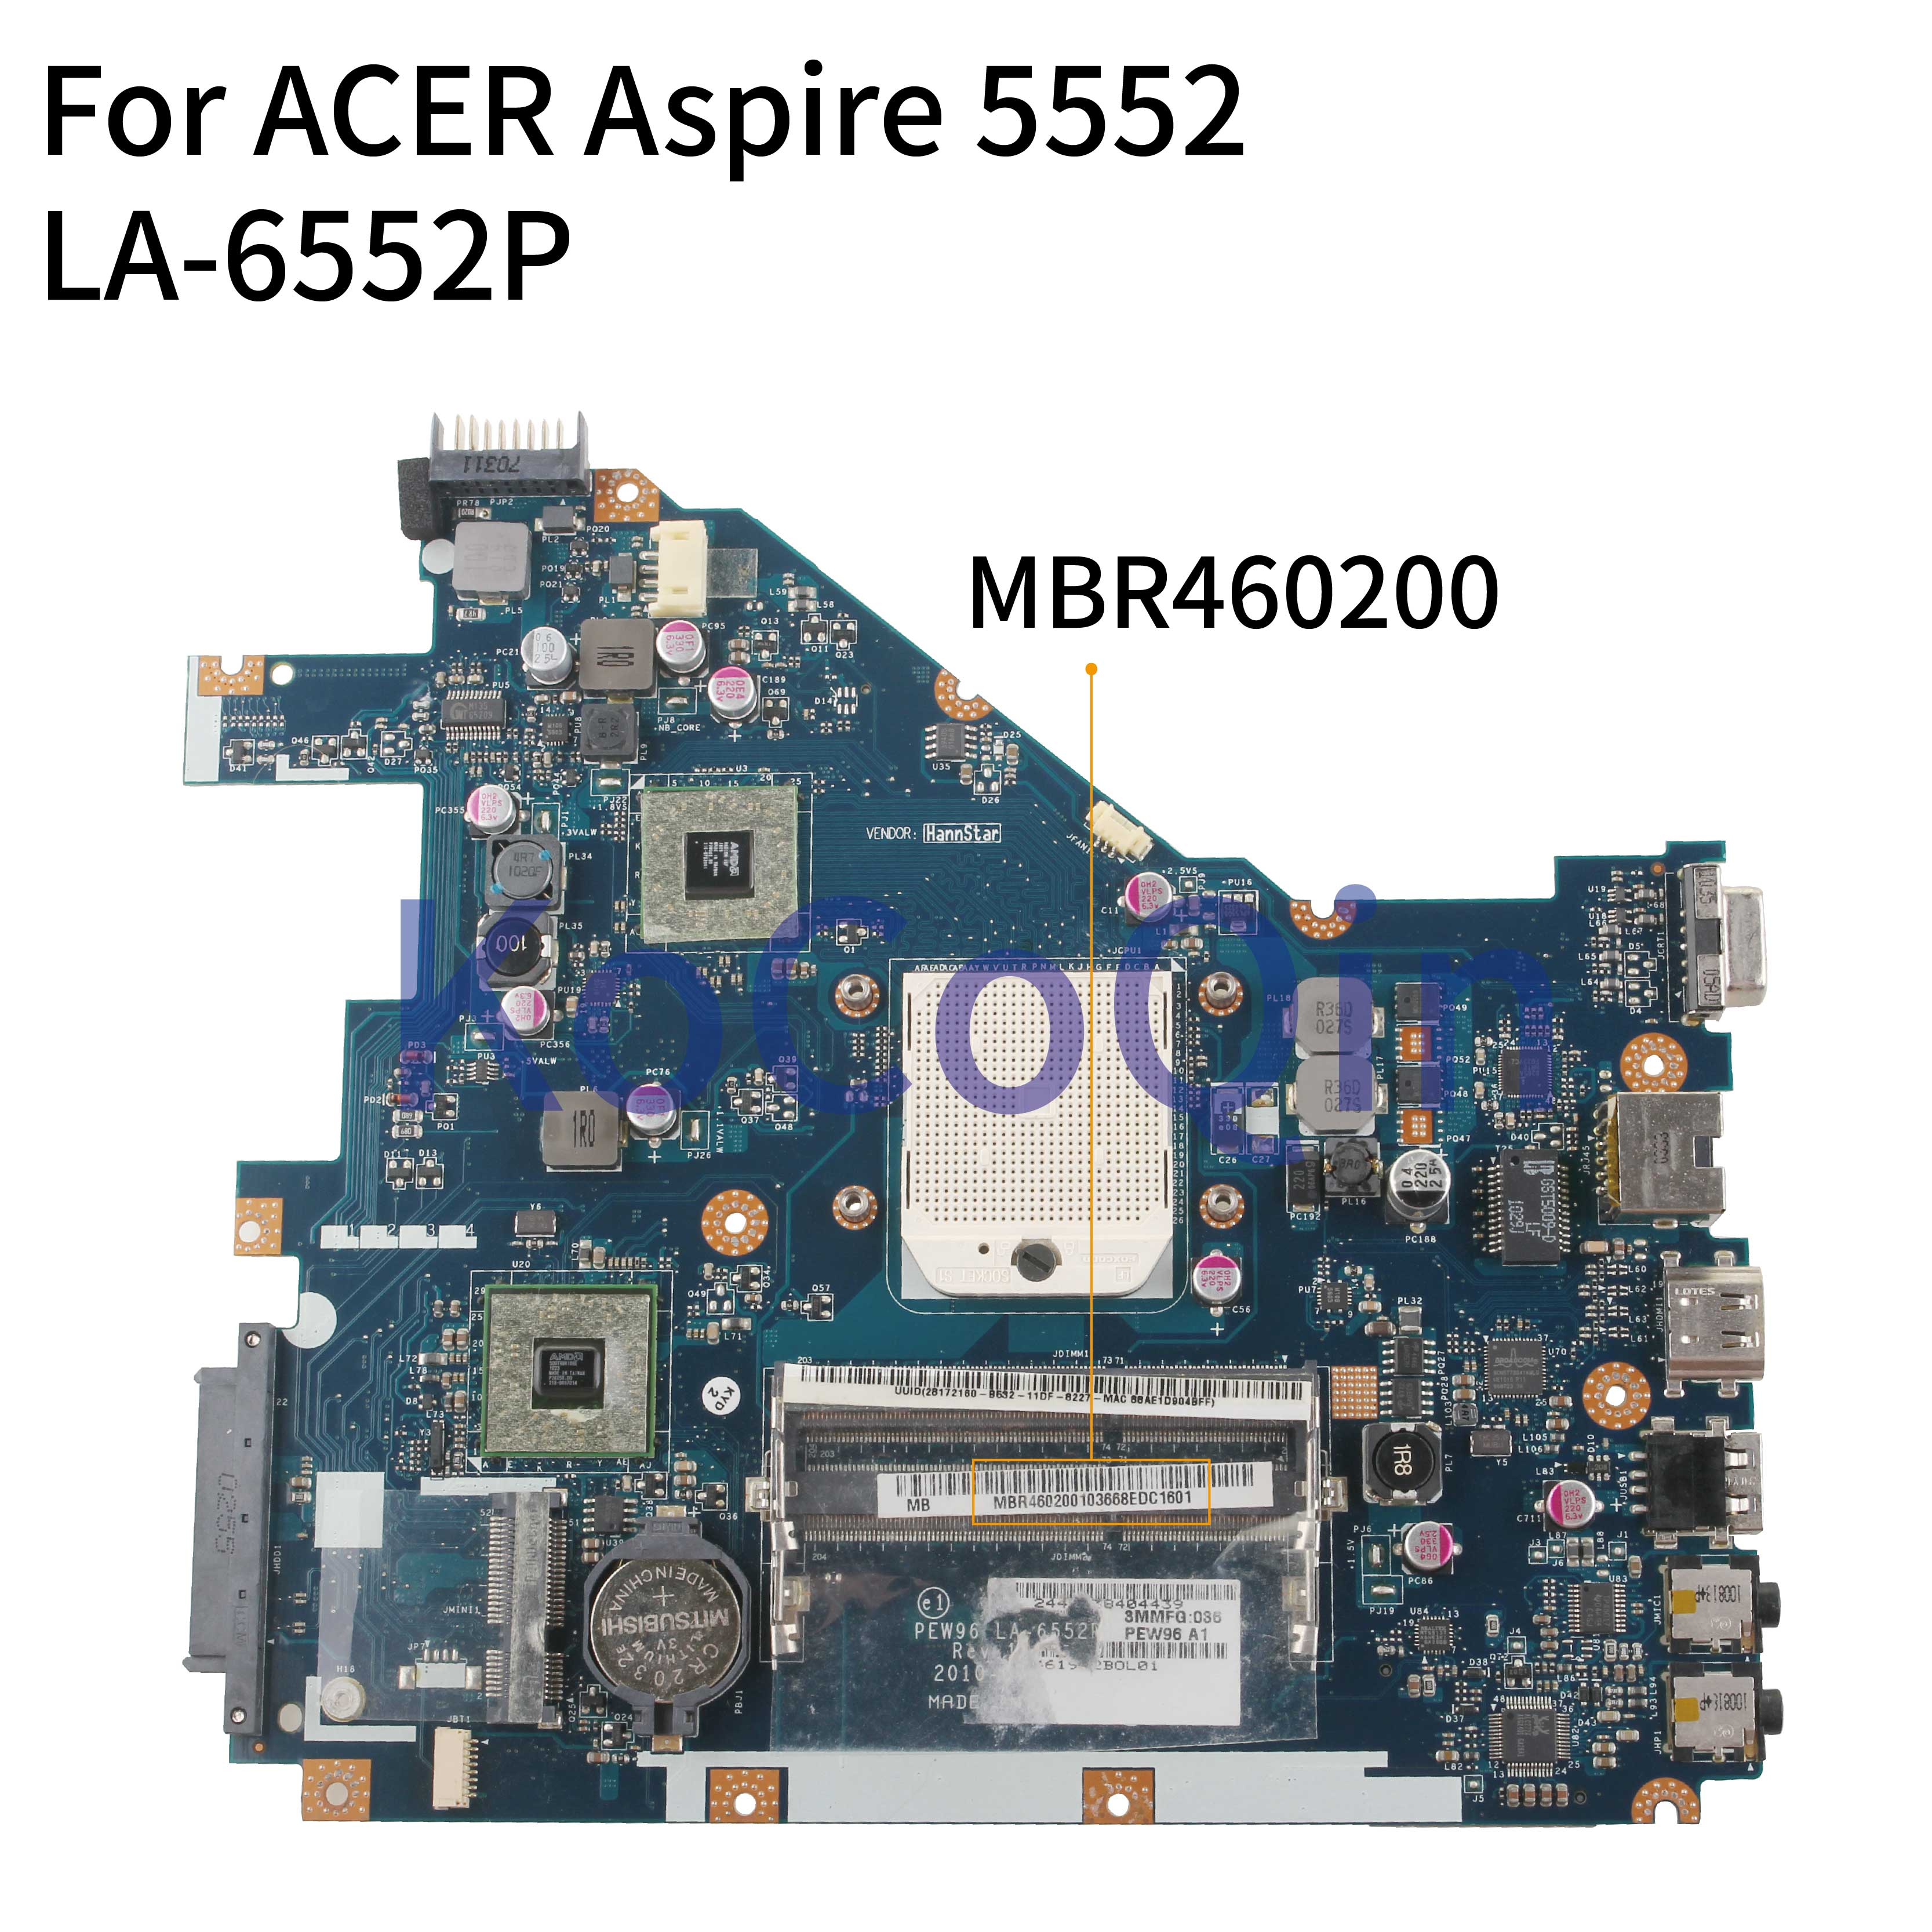 KoCoQin Laptop Motherboard For ACER Aspire 5552 Mainboard PEW96 LA-6552P MBR4602001 AMD